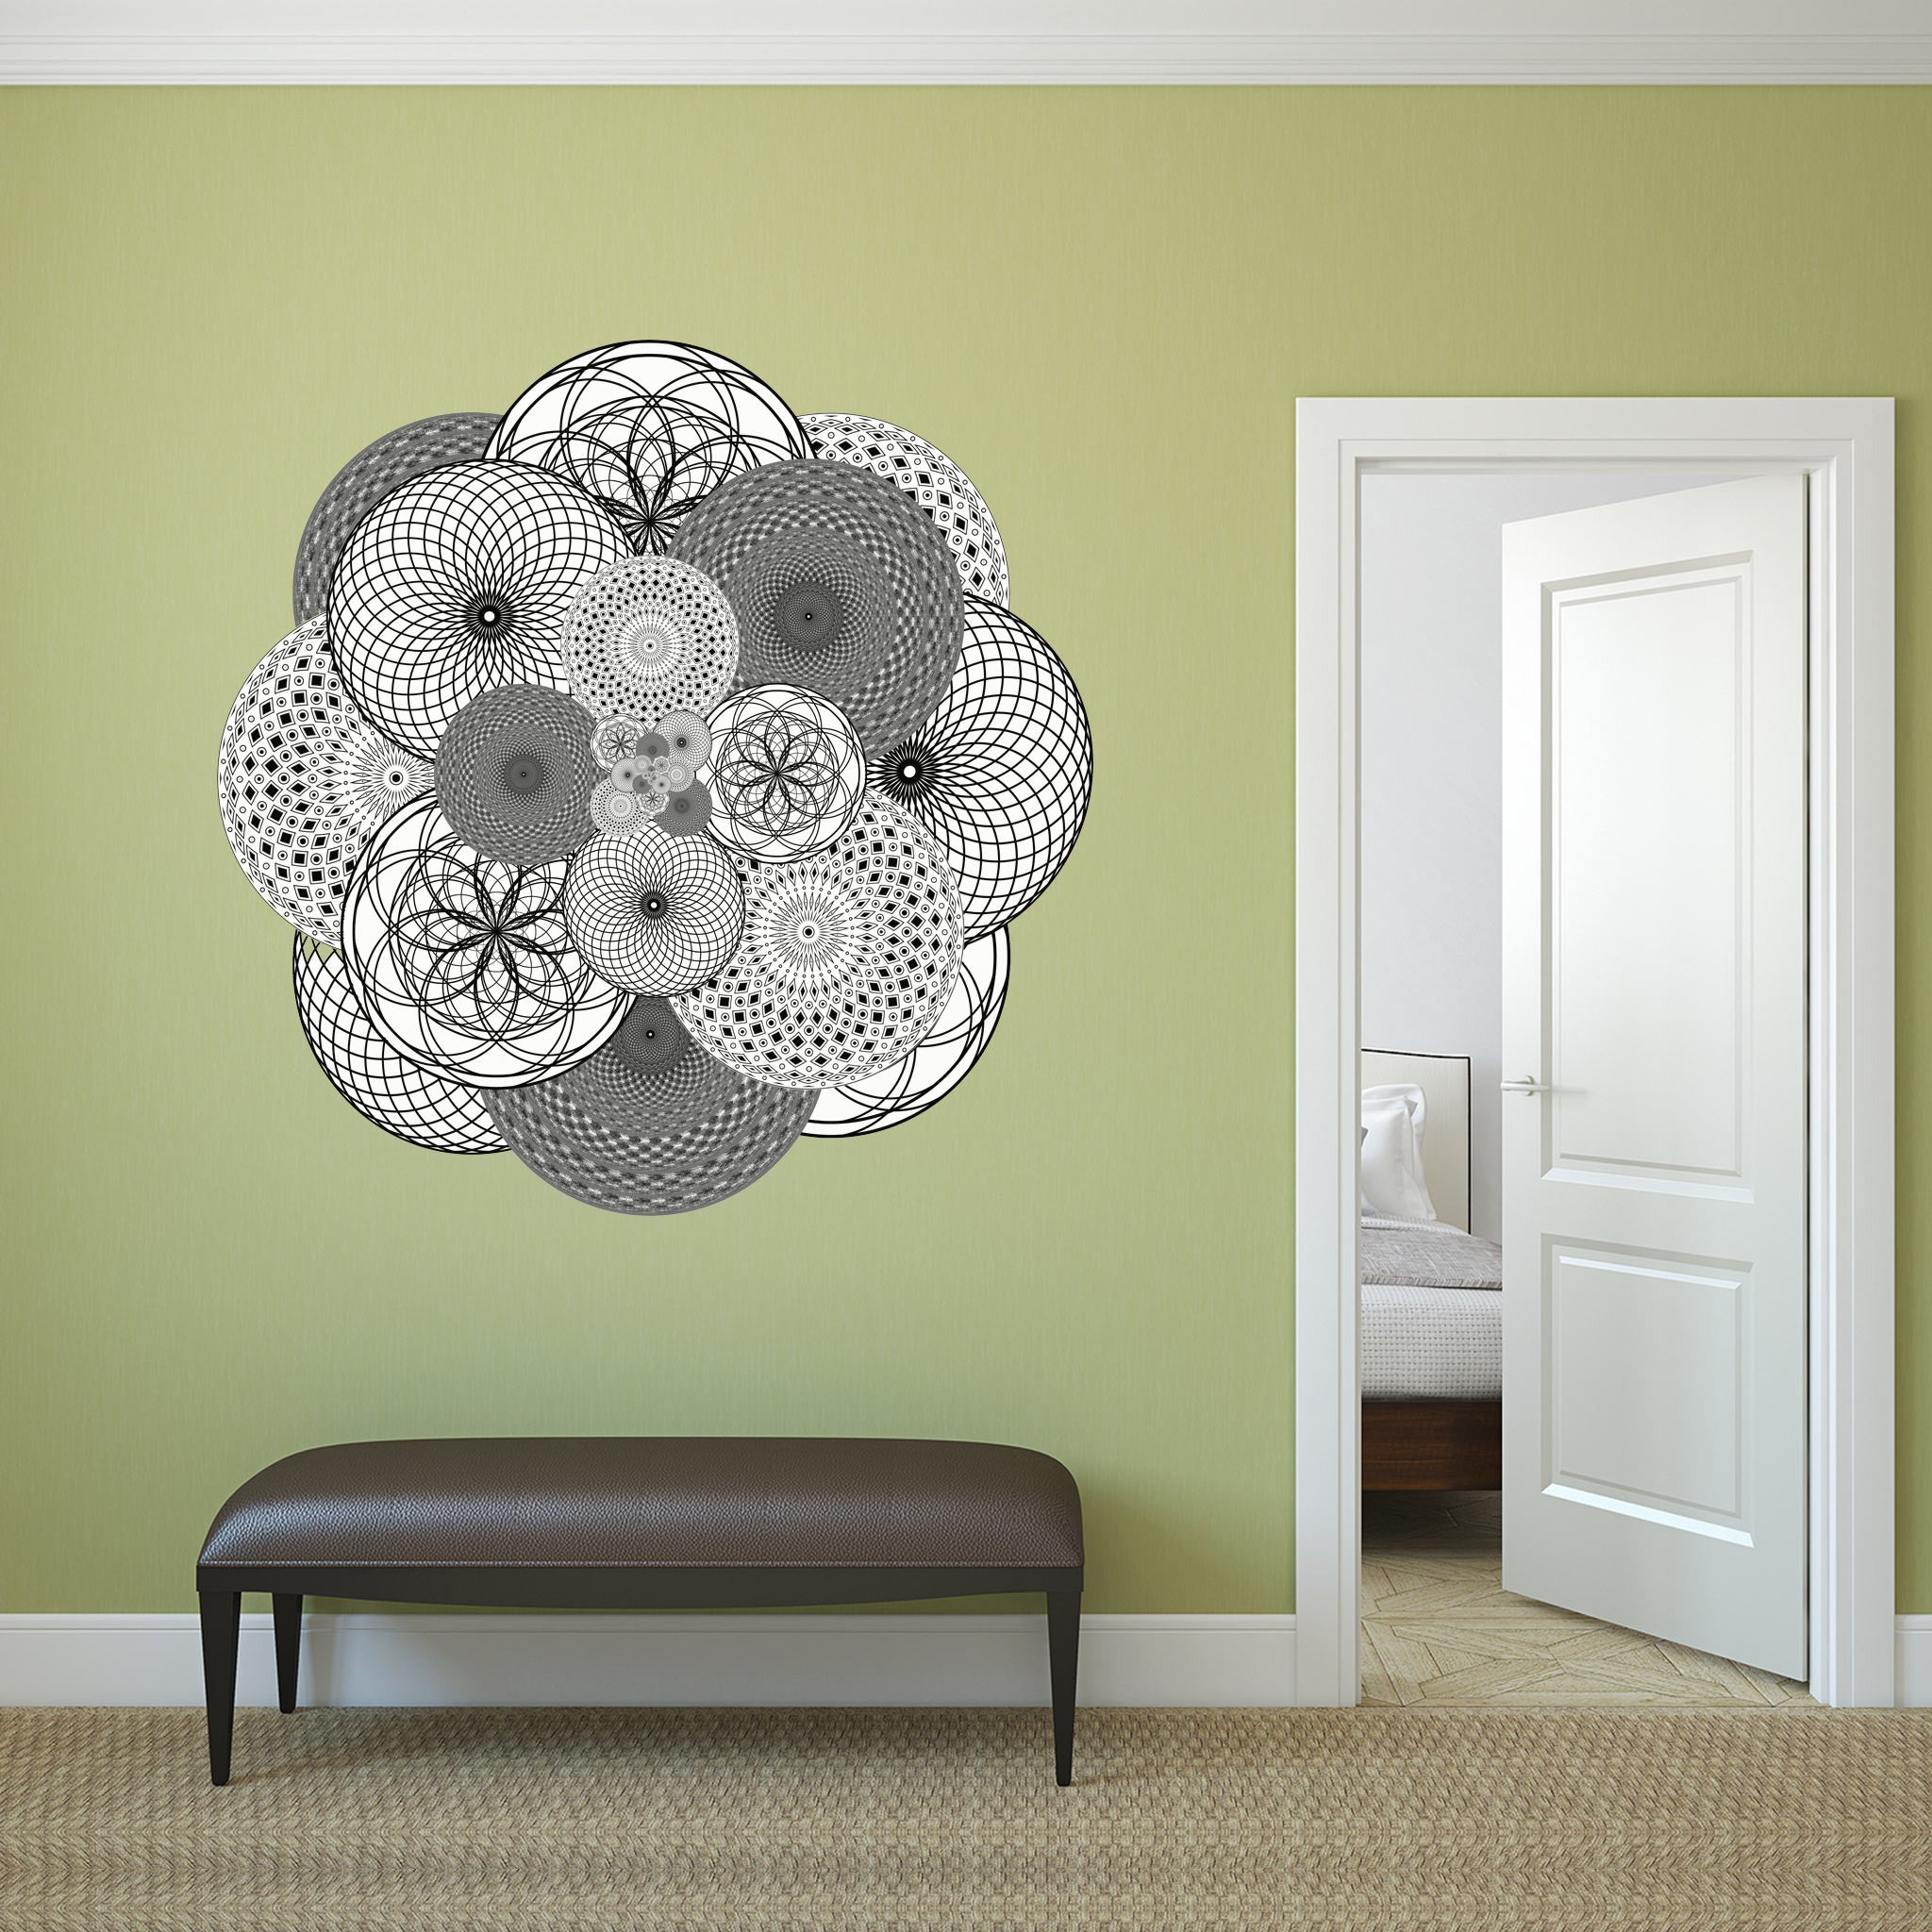 Supercluster Geometric Fabric Wall Sticker (Circle) - Conspicuous Design